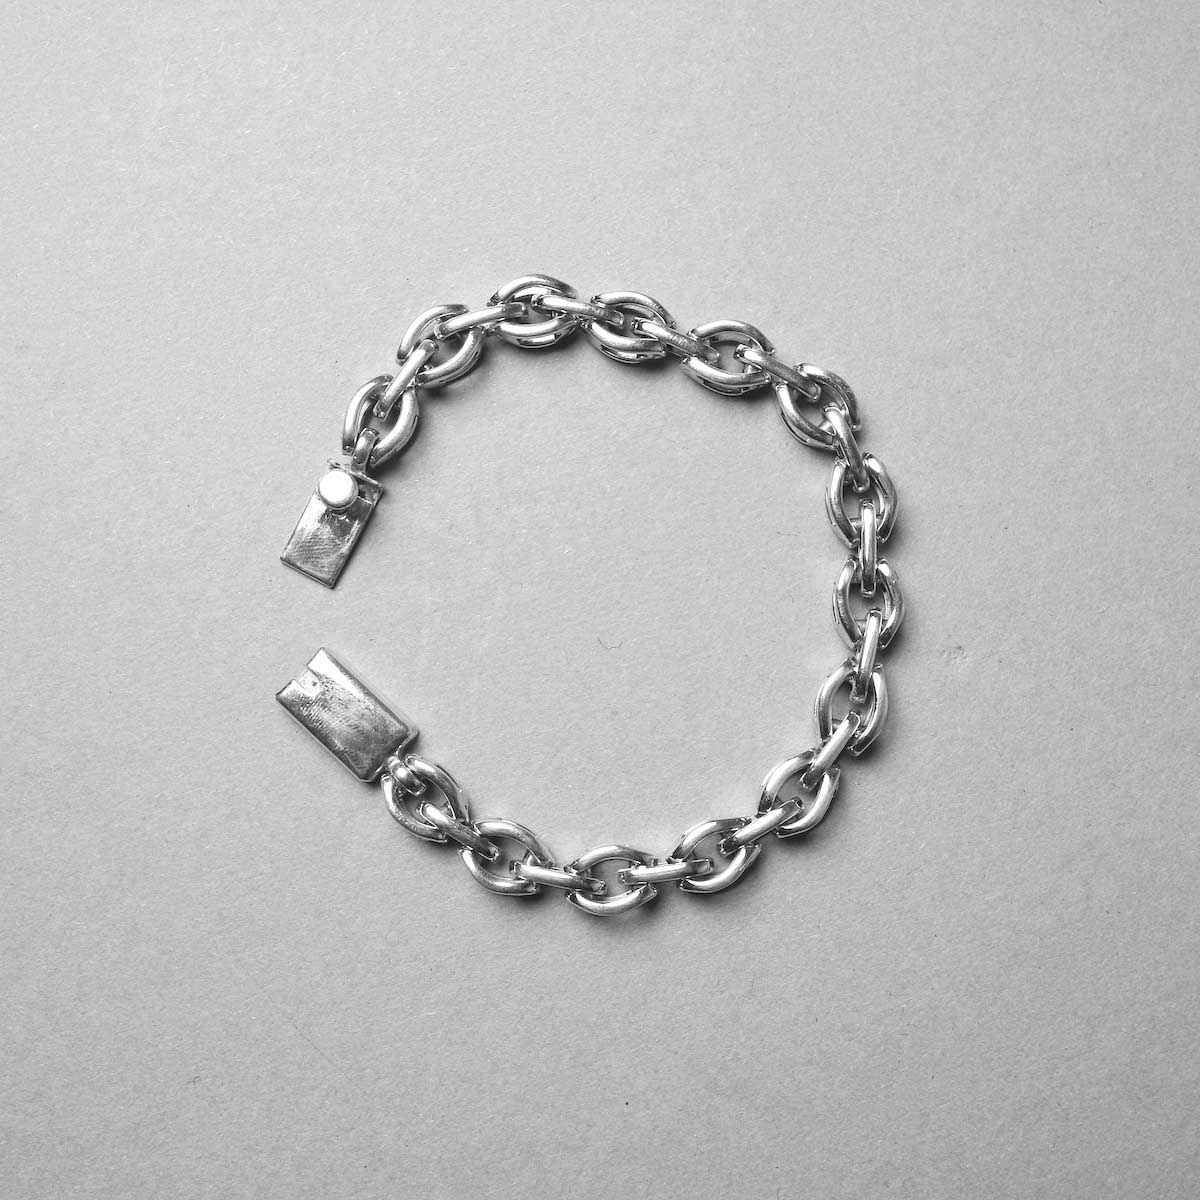 FIFTH GENERAL STORE / Silver-CCC-2 Silver Chain Bracelet (7mm)